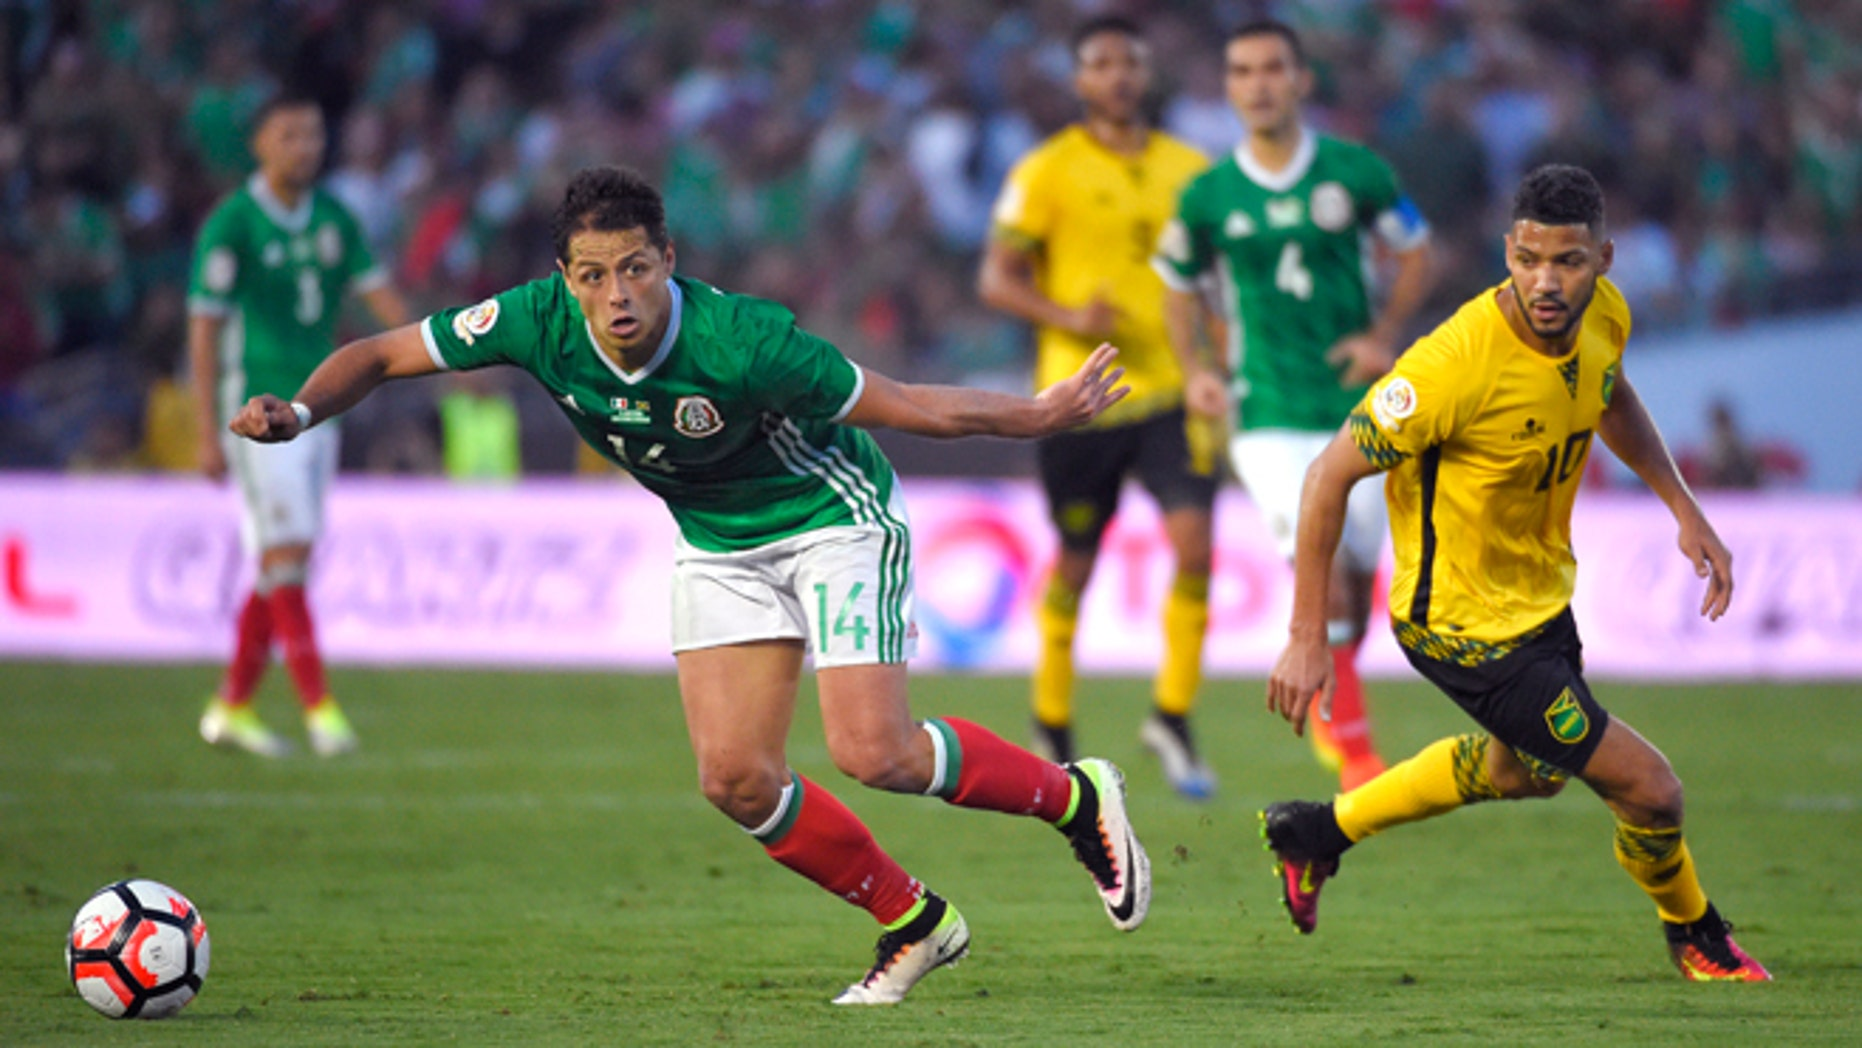 Mexico forward Chicharito, left, moves the ball as Jamaica midfielder Joel McAnuff pressures him during a Copa America group C soccer match at the Rose Bowl, Thursday, June 9, 2016, in Pasadena, Calif. (AP Photo/Mark J. Terrill)